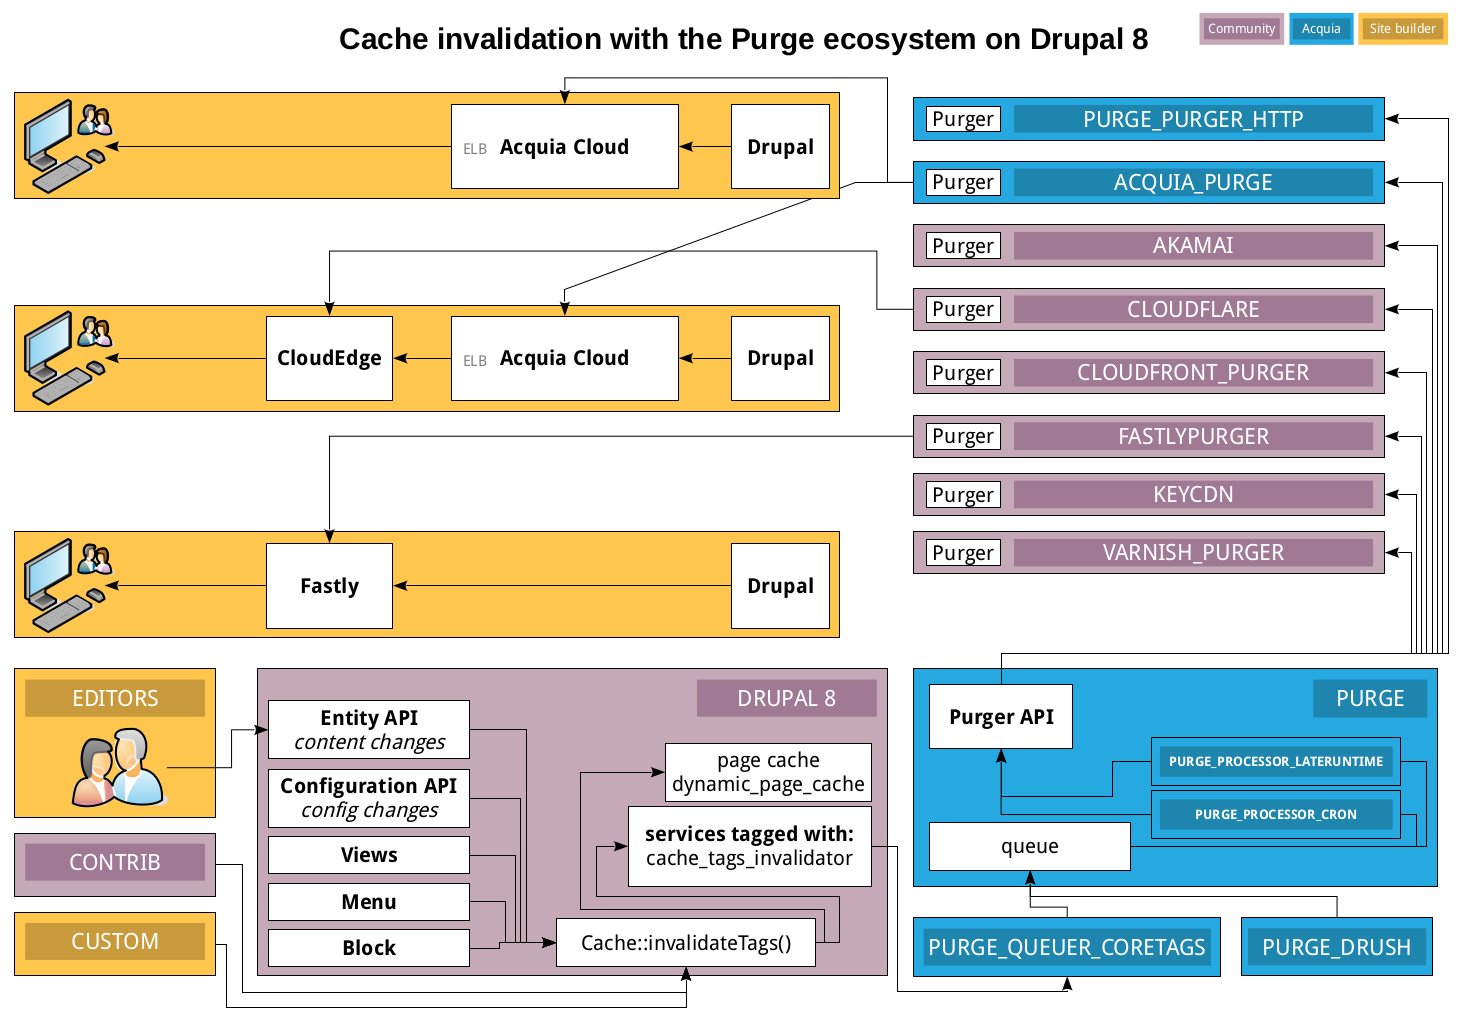 Cache invalidation with the Purge ecosystem on Drupal 8